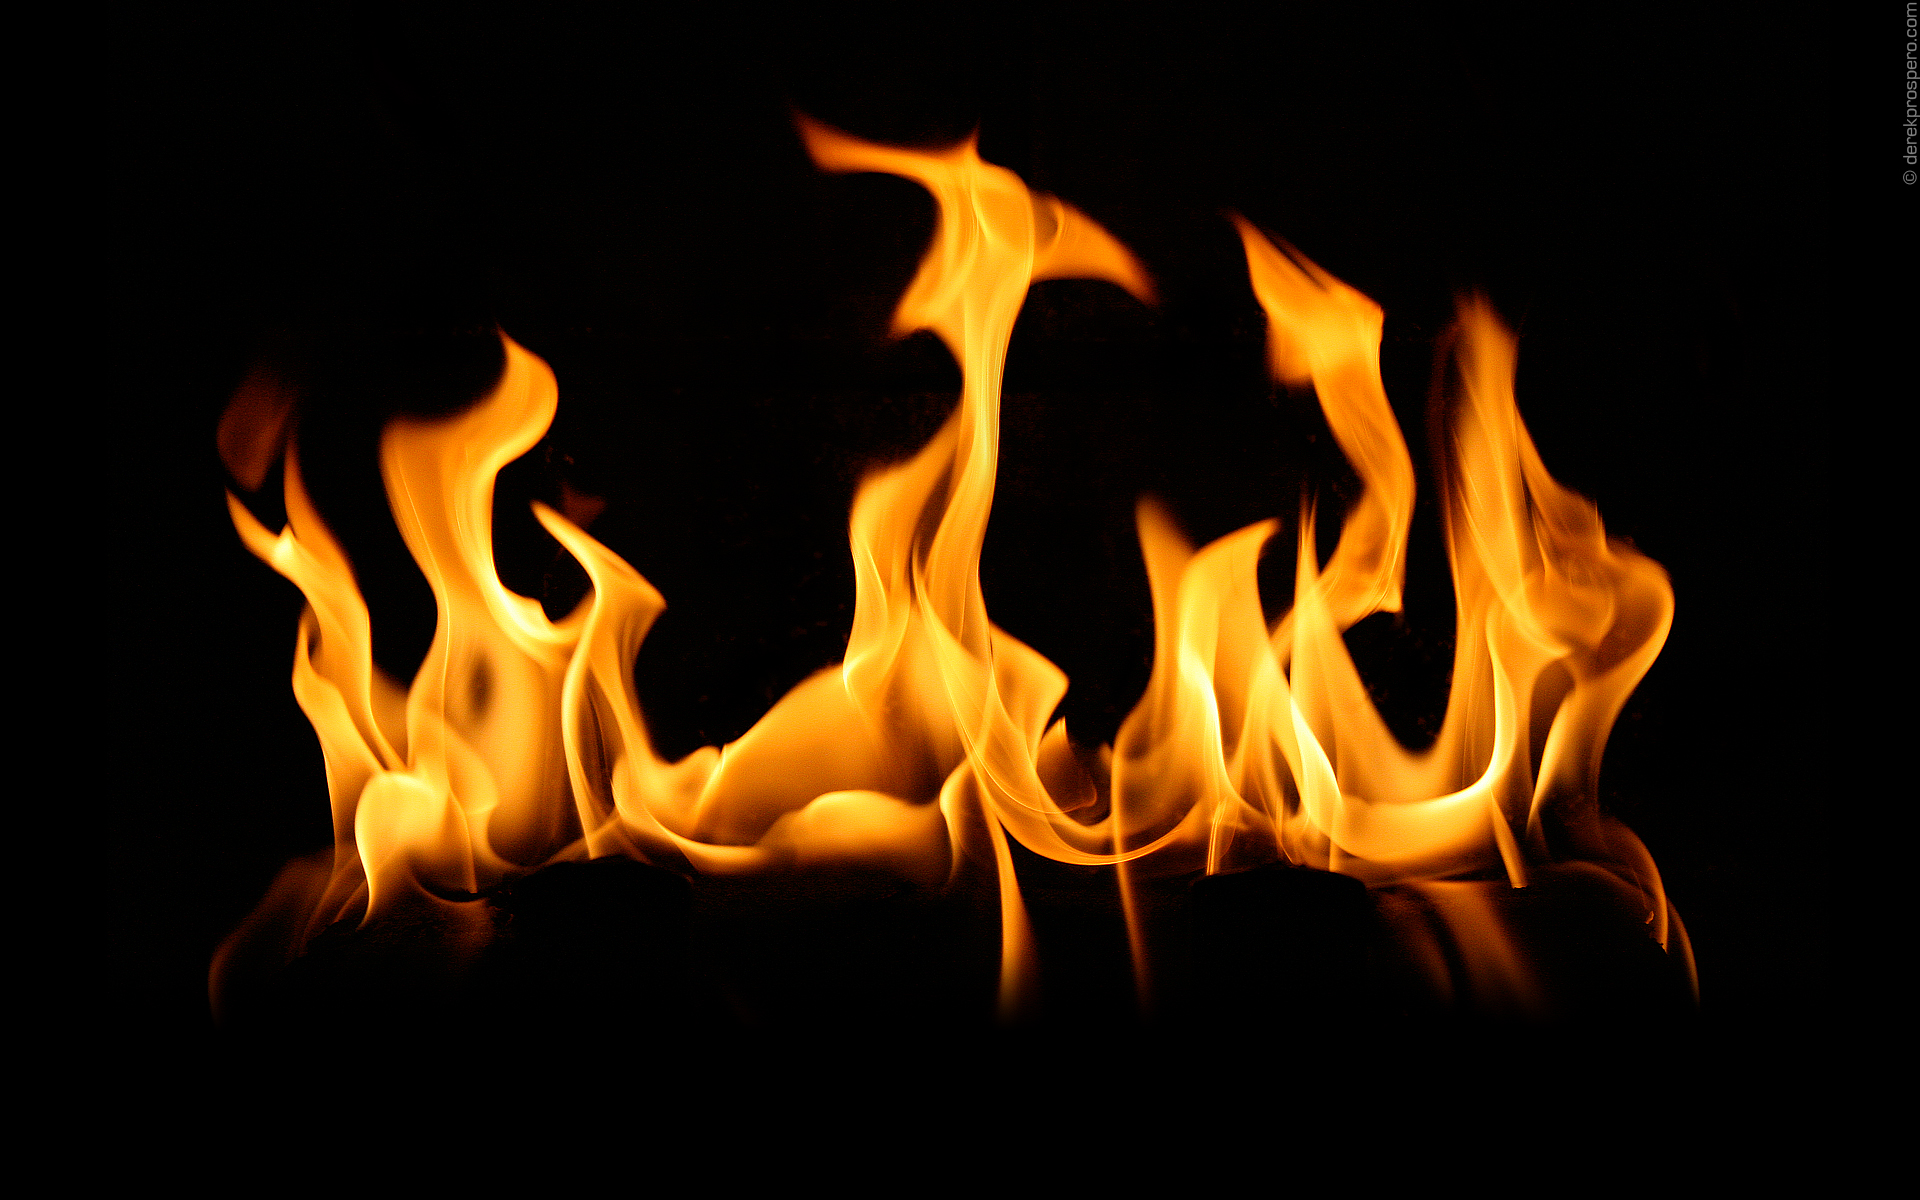 Fire Flames 3D Wallpaper Wallpaper